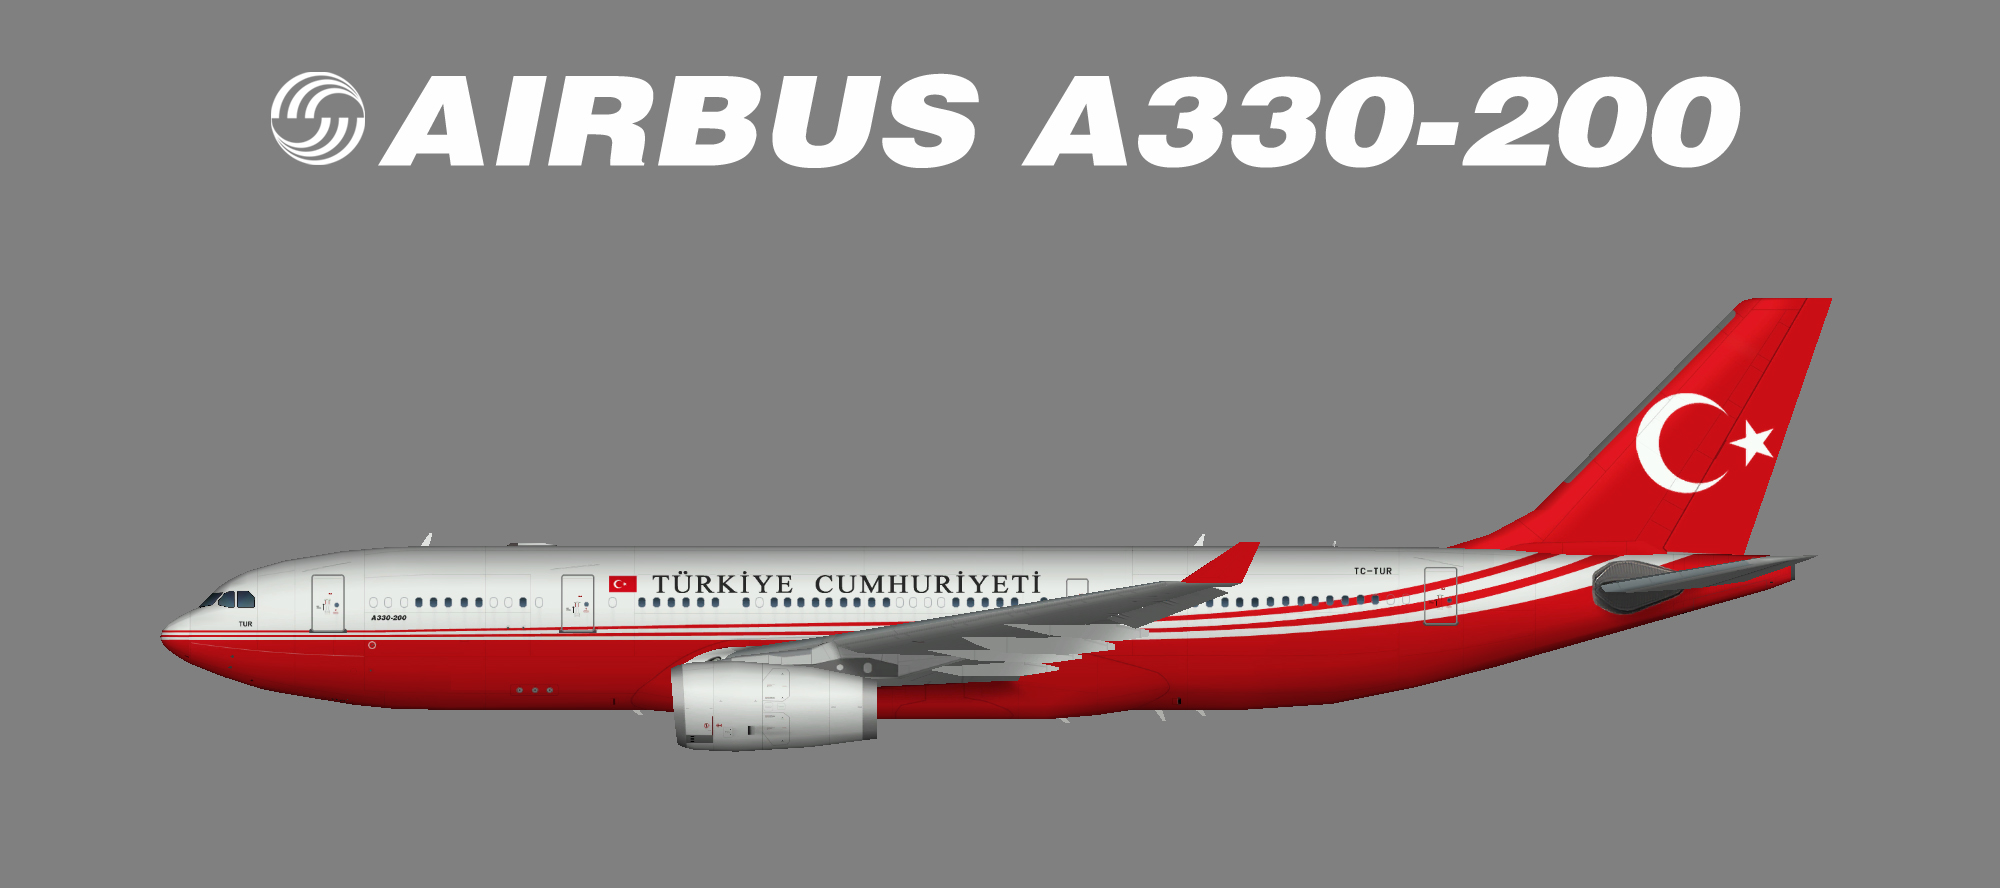 Turkish Government Airbus A330 200 Juergen S Paint Hangar